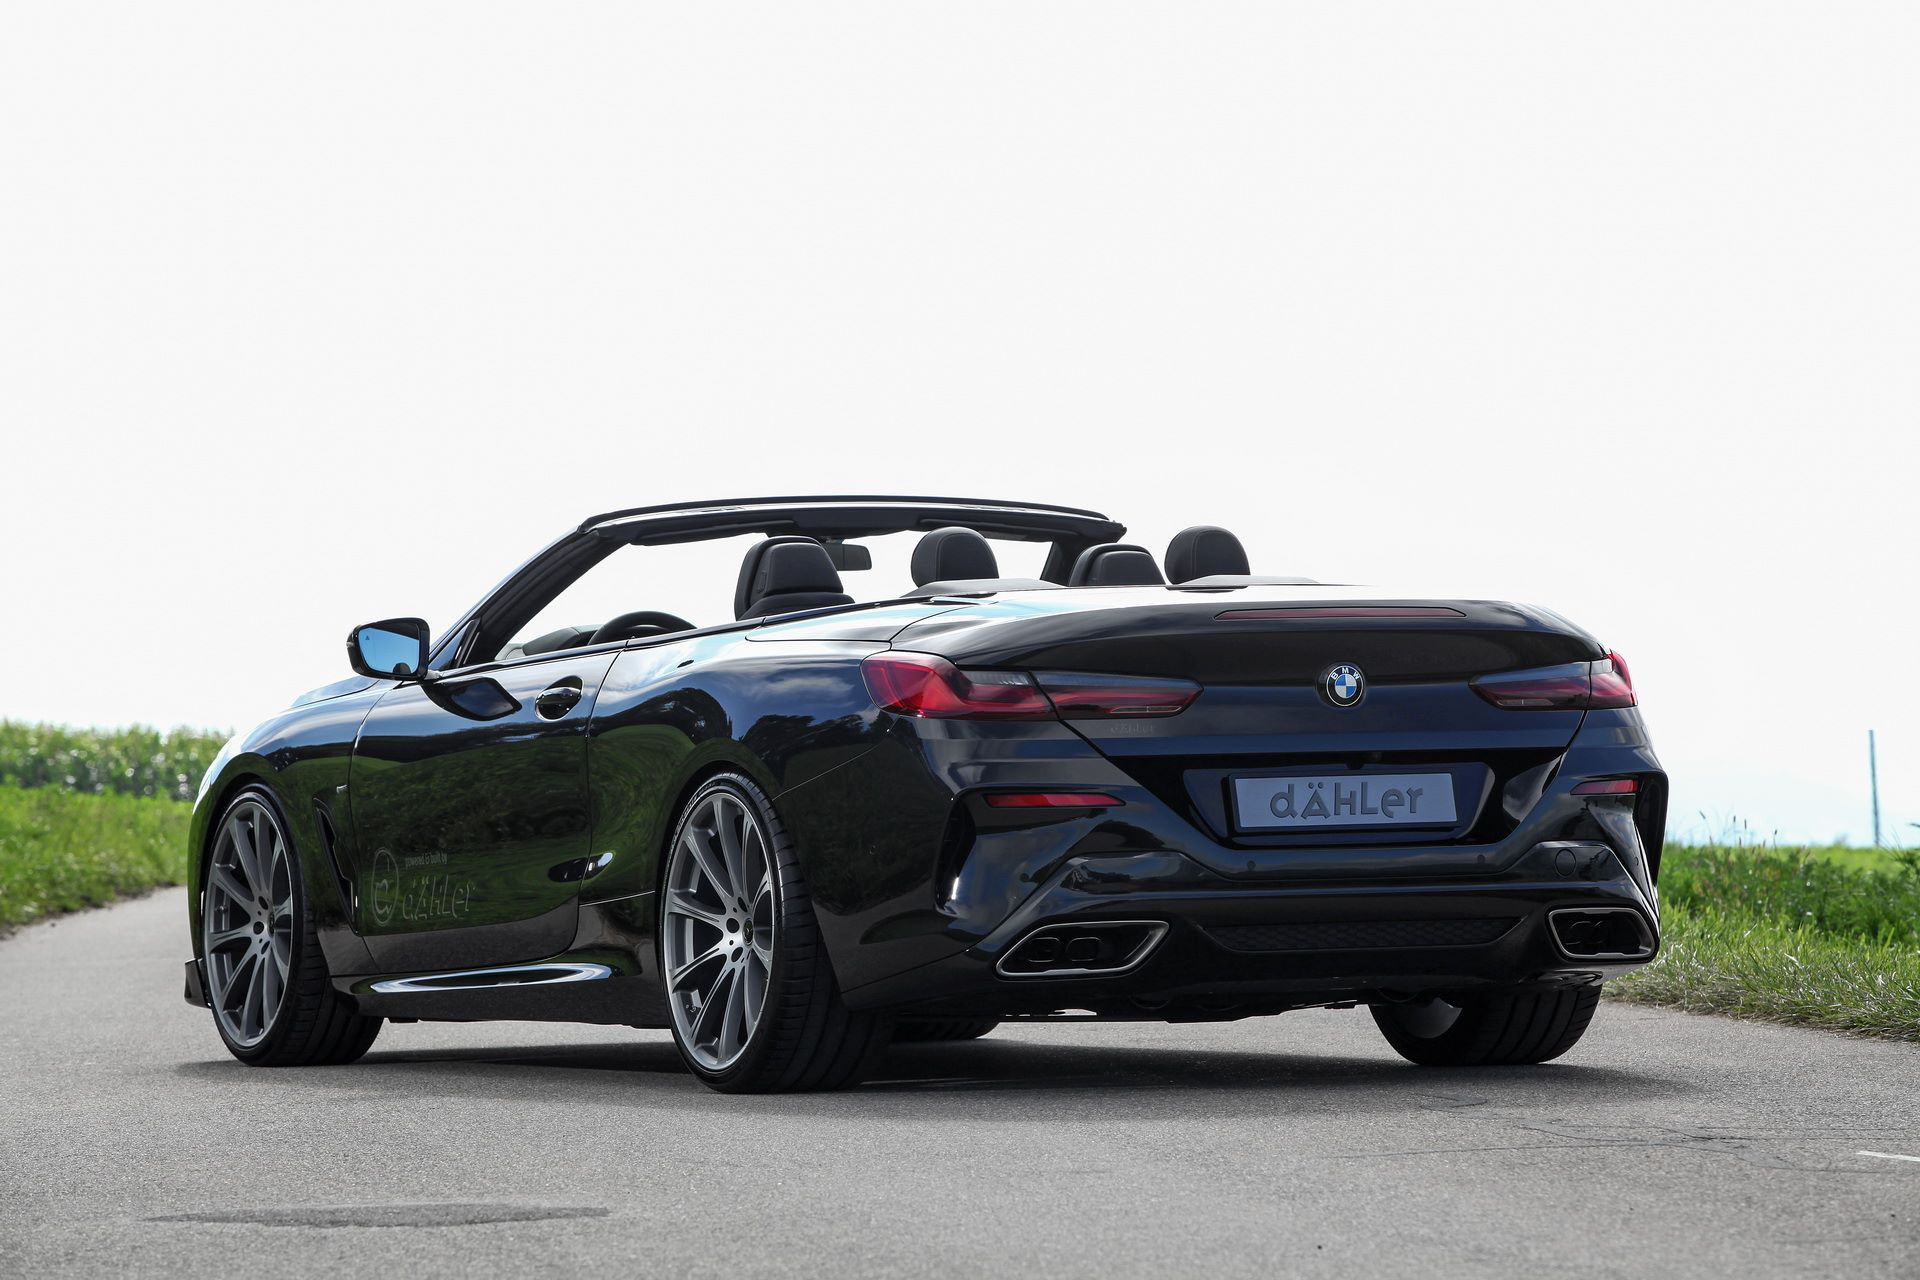 BMW-M850i-convertible-by-Dahler-5